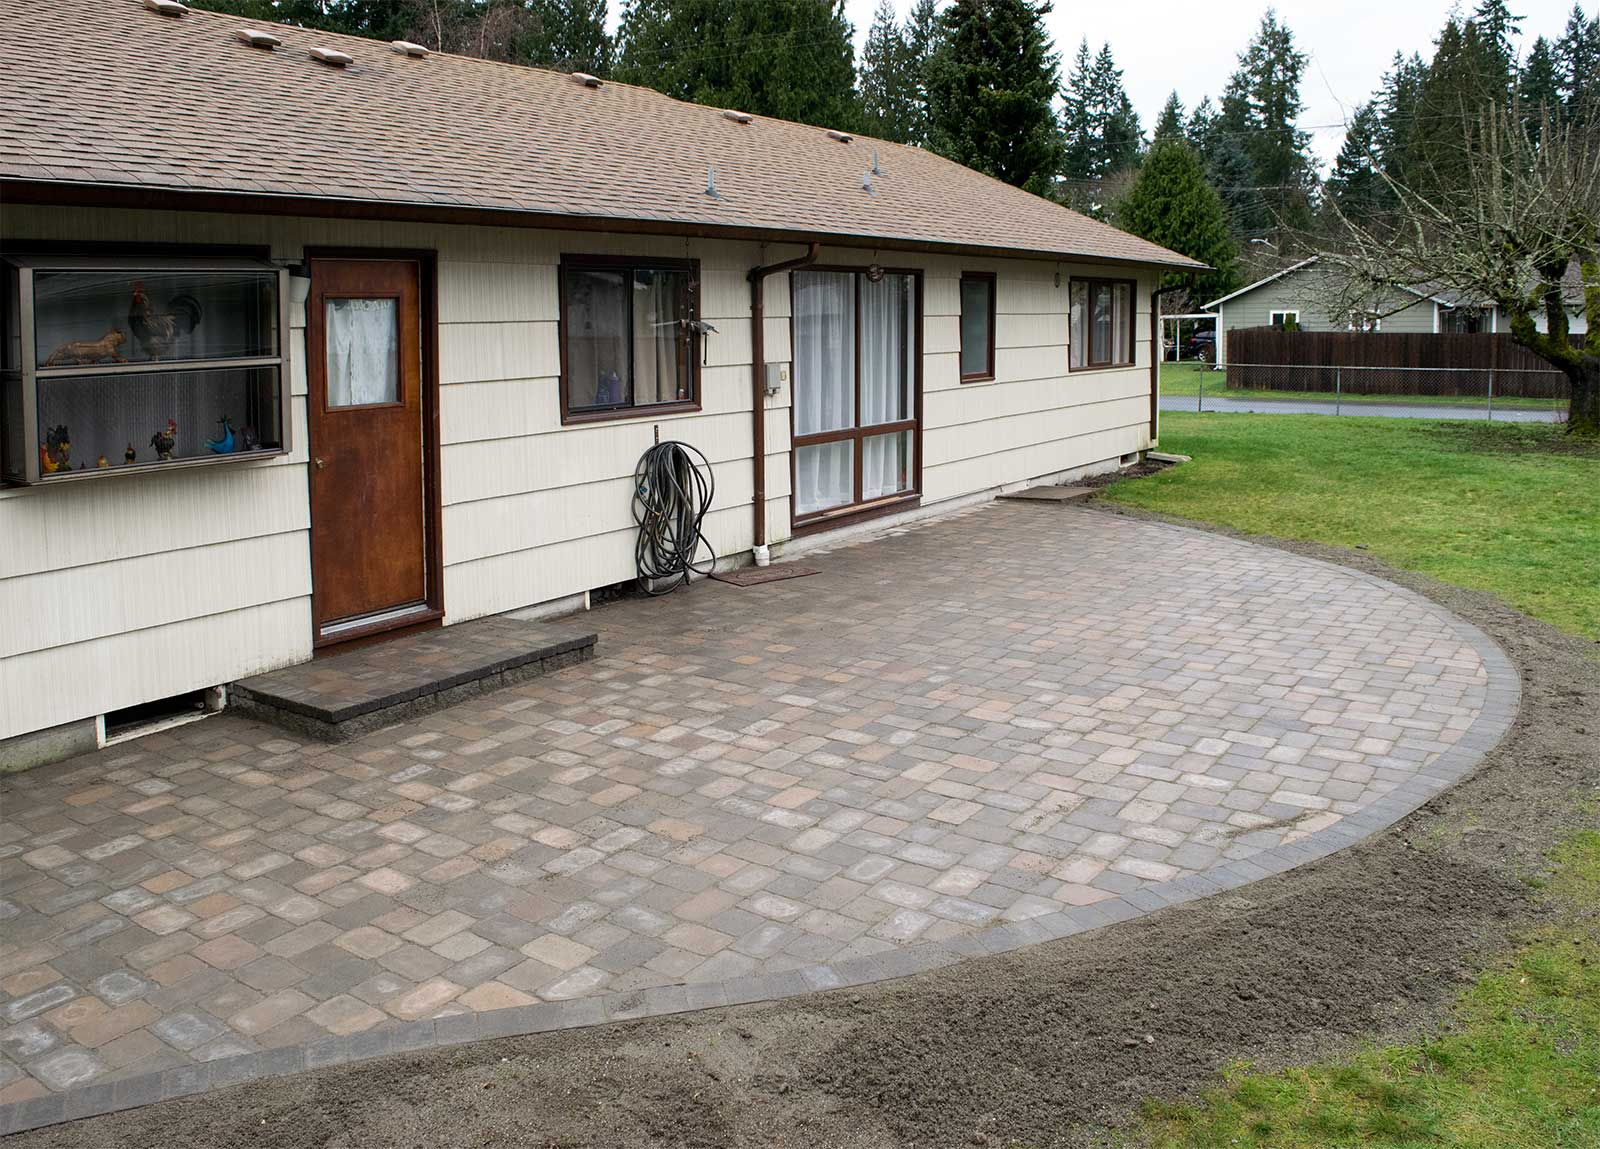 Roca Style Tumbled Paver Patio Brings New Life To This Lacey Rambleru0027s  Backyard. Point To